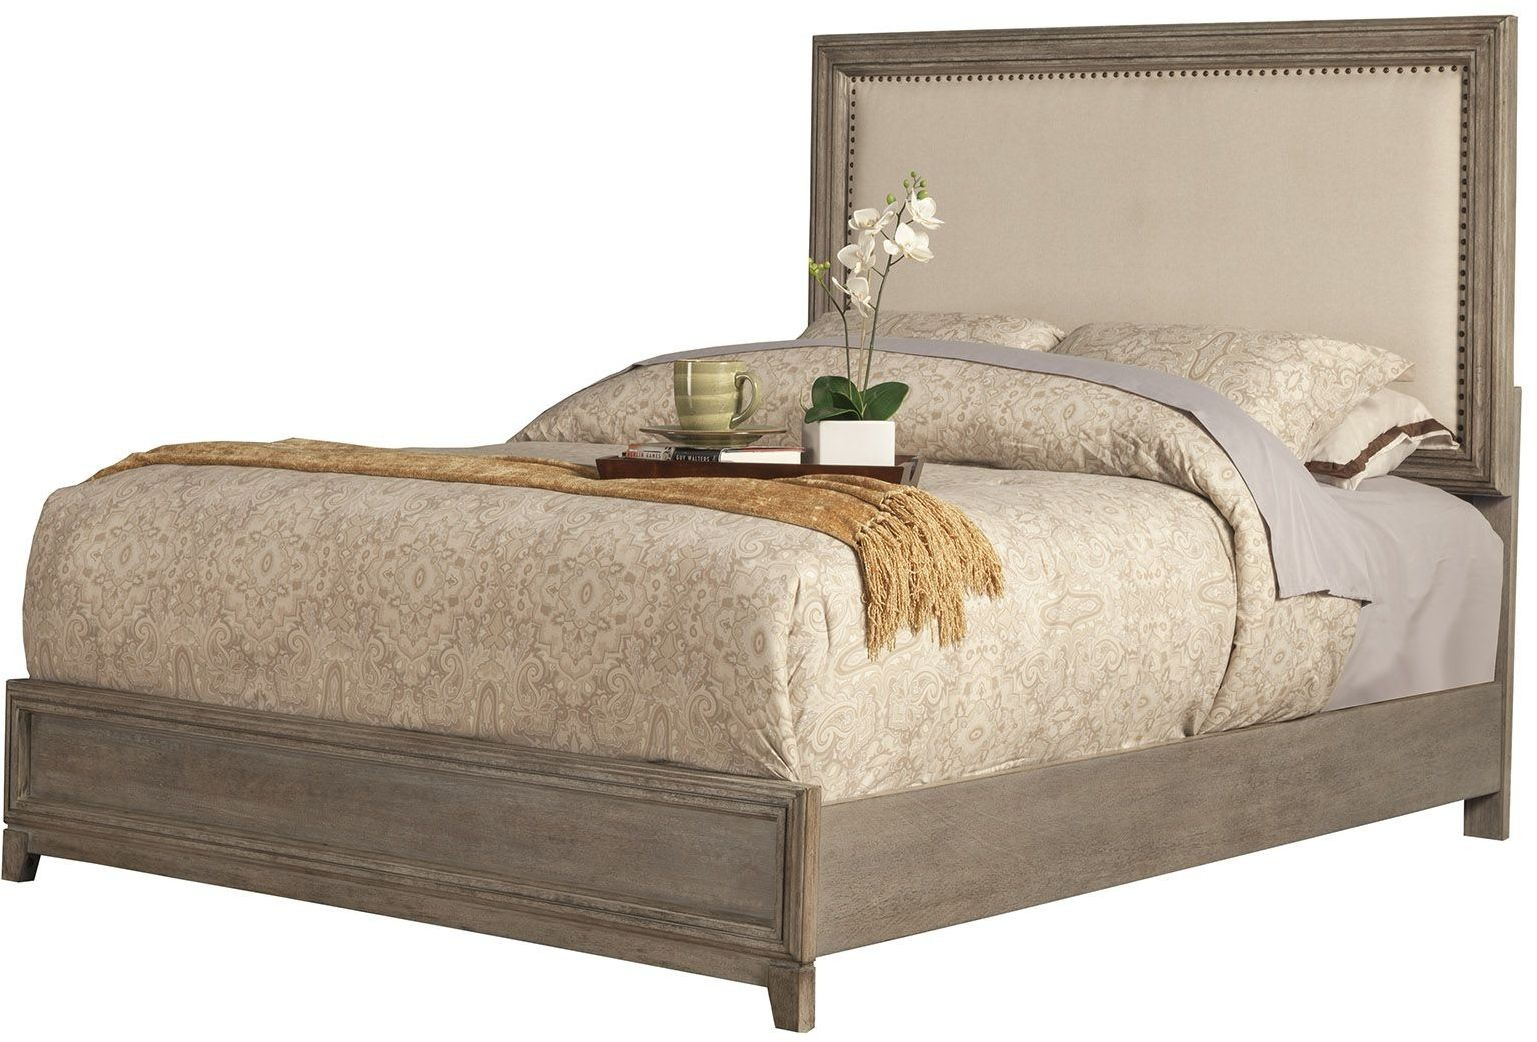 Camilla Grey Upholstered King Panel Bed From Alpine